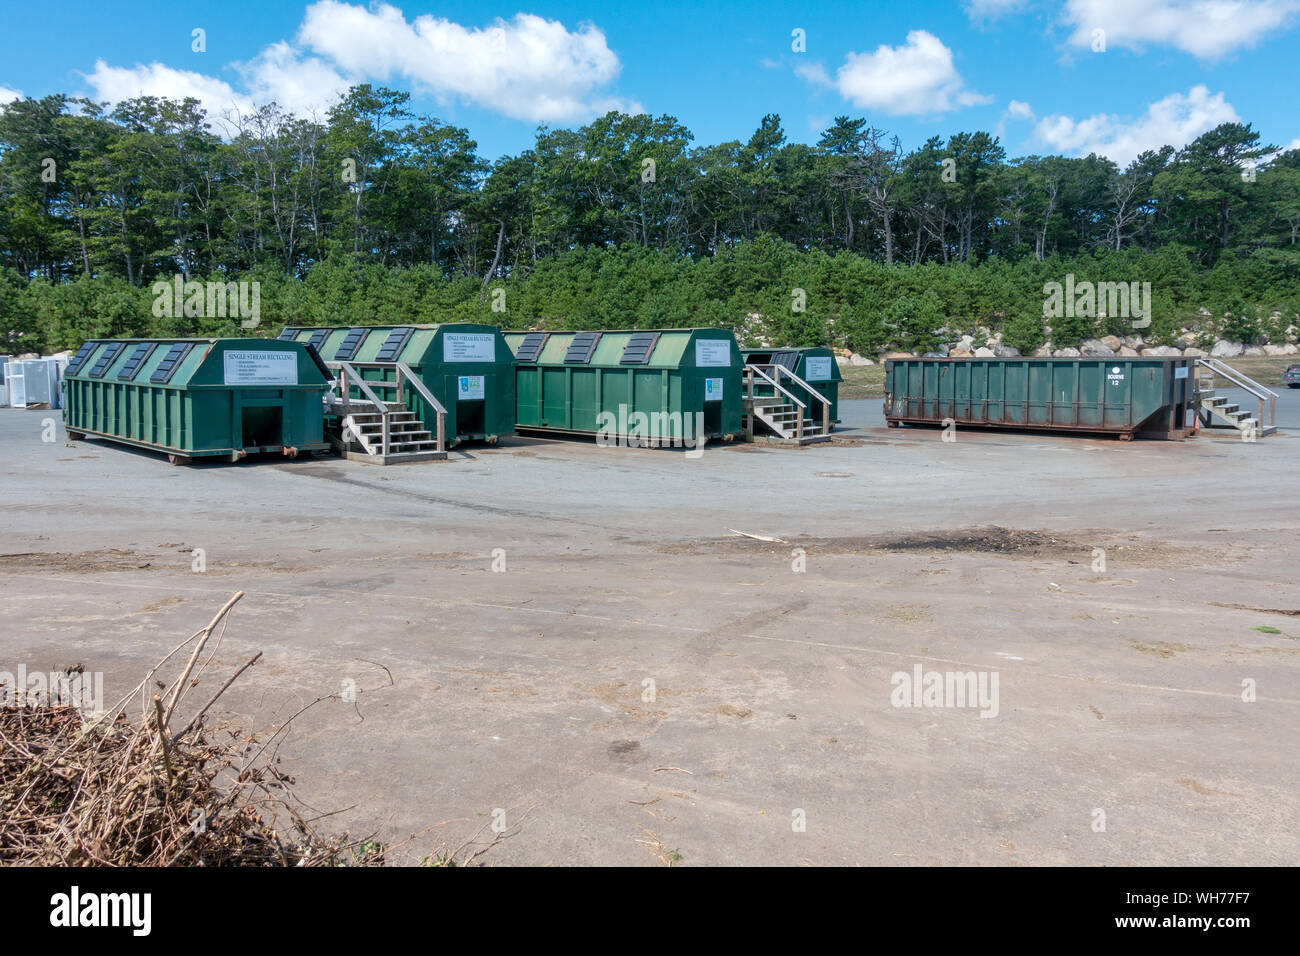 Single Stream recycling center containers for glass, plastic and paper at US landfill at the Bourne Integrated Solid Waste Management facility Stock Photo